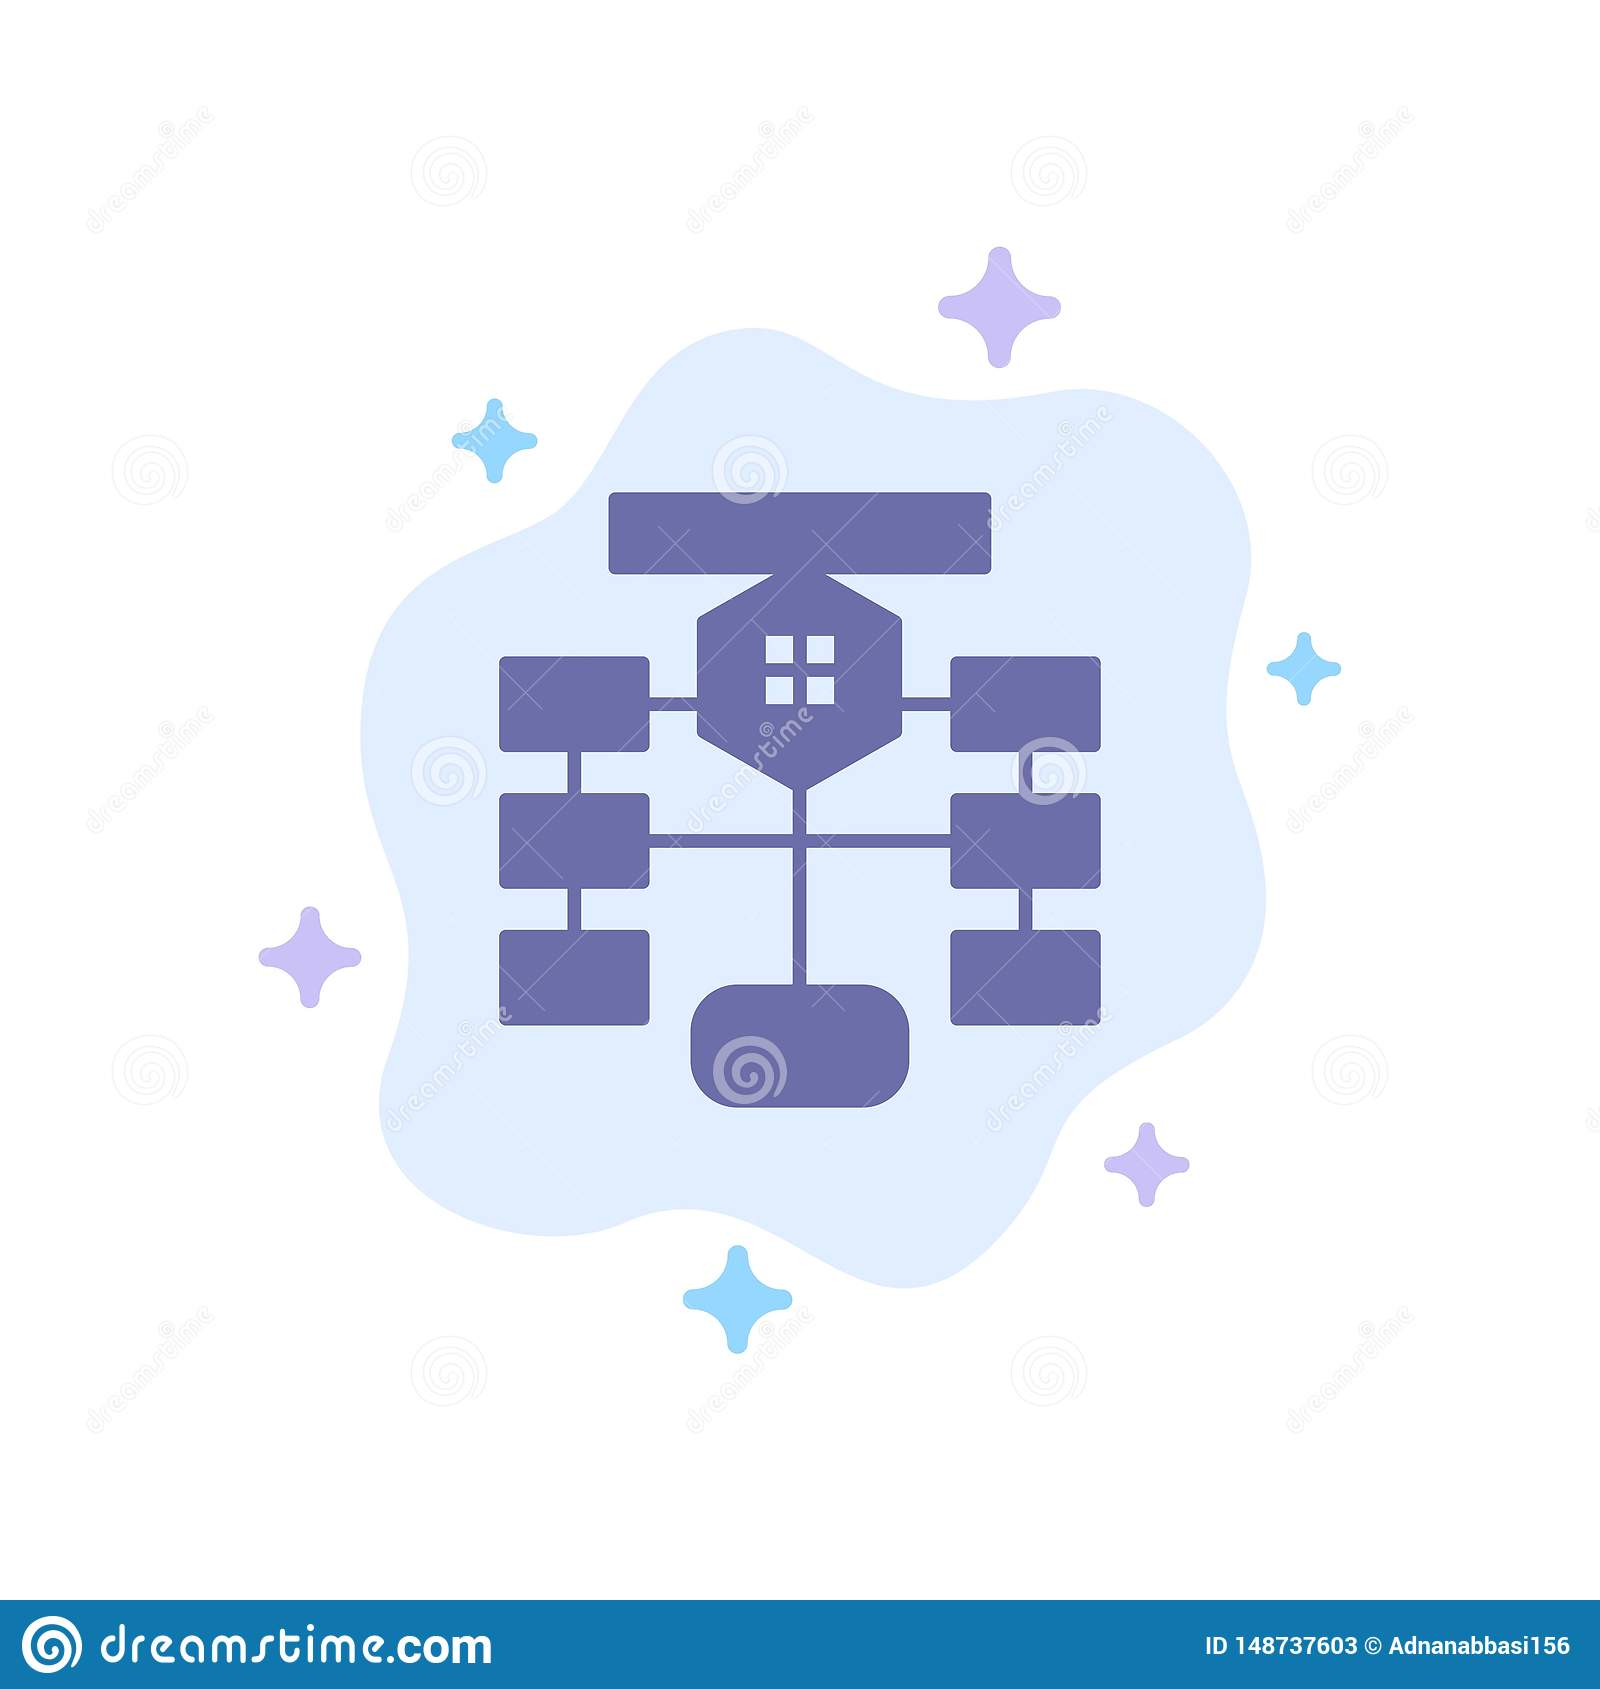 Flowchart, Flow, Chart, Data, Database Blue Icon on Abstract Cloud Background